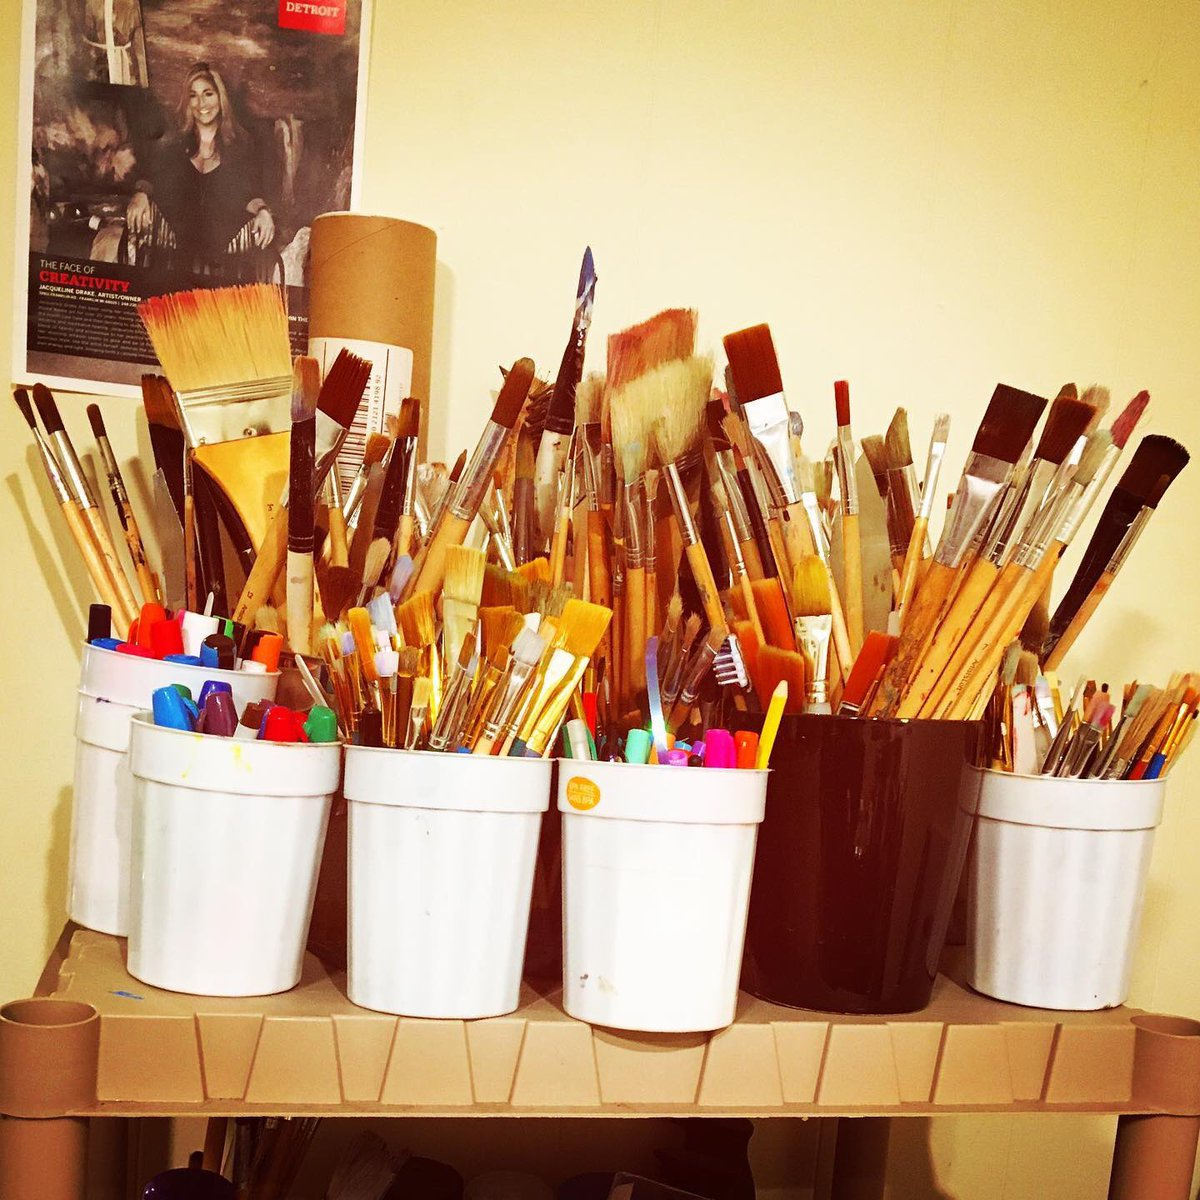 Paint brush collection at our neighbor artist's @artofjacquelinedrake workshop and gallery. Don't forget to visit us on Tuesday 21 at 7 pm to see how Jacqueline proceeds to wax her paintings with encaustic. You can also tour her gallery at any time during the day #art #library